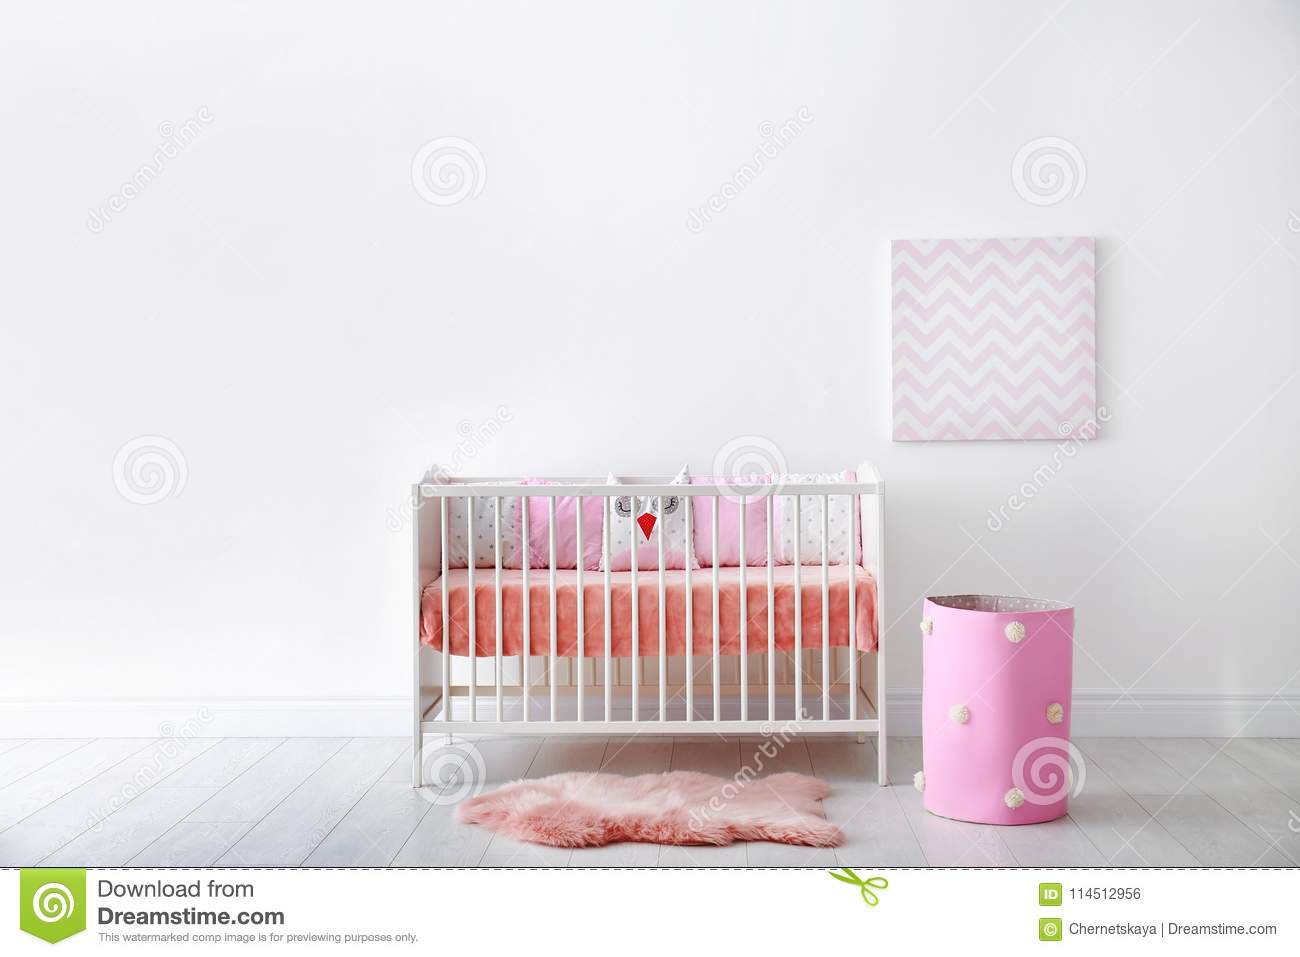 Baby room interior with crib